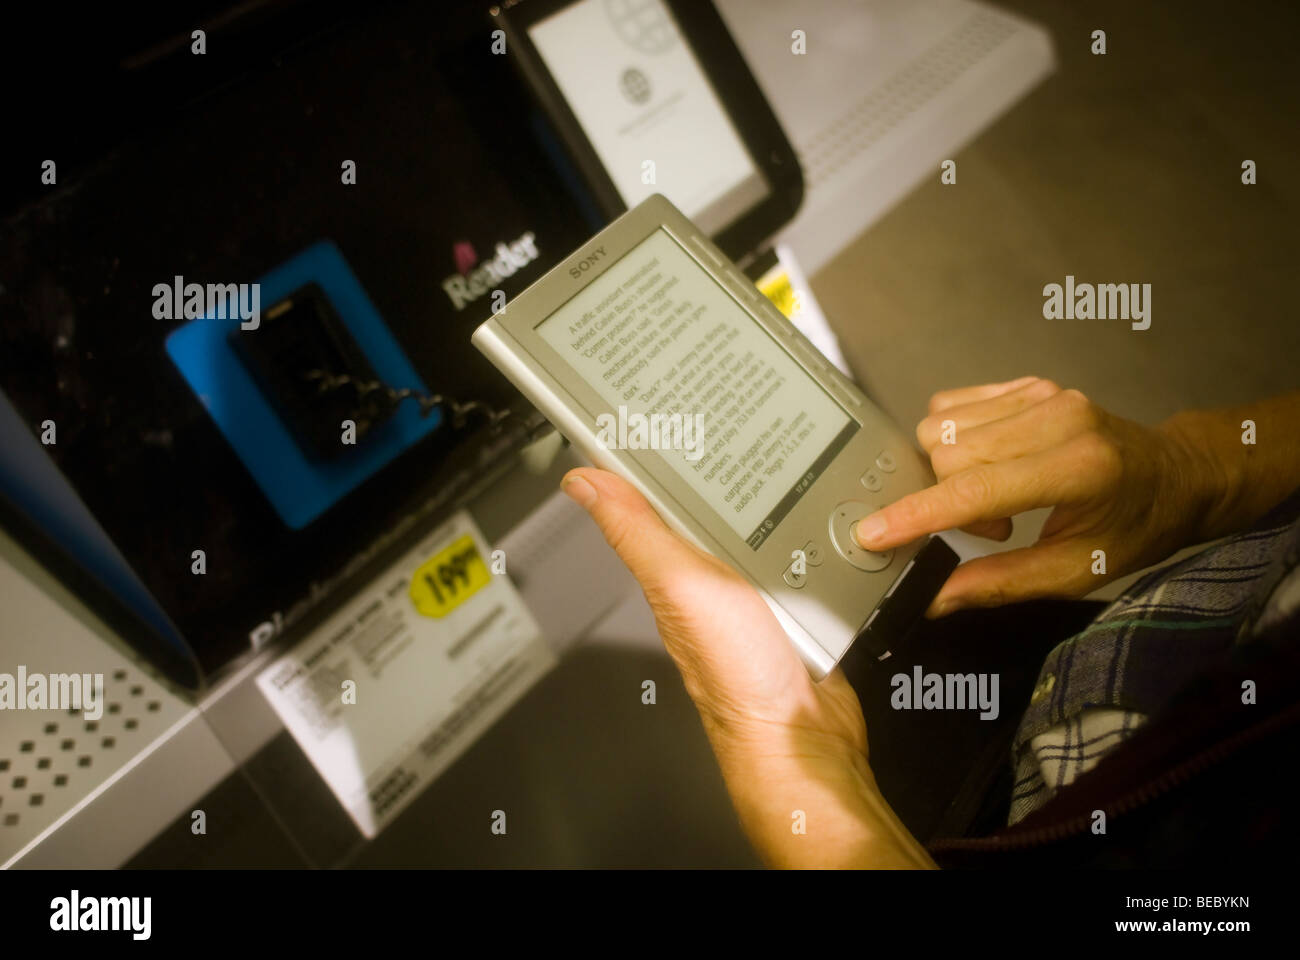 A customer at a Best Buy electronics store in New York examines a Sony Reader Pocket Edition ebook reader - Stock Image